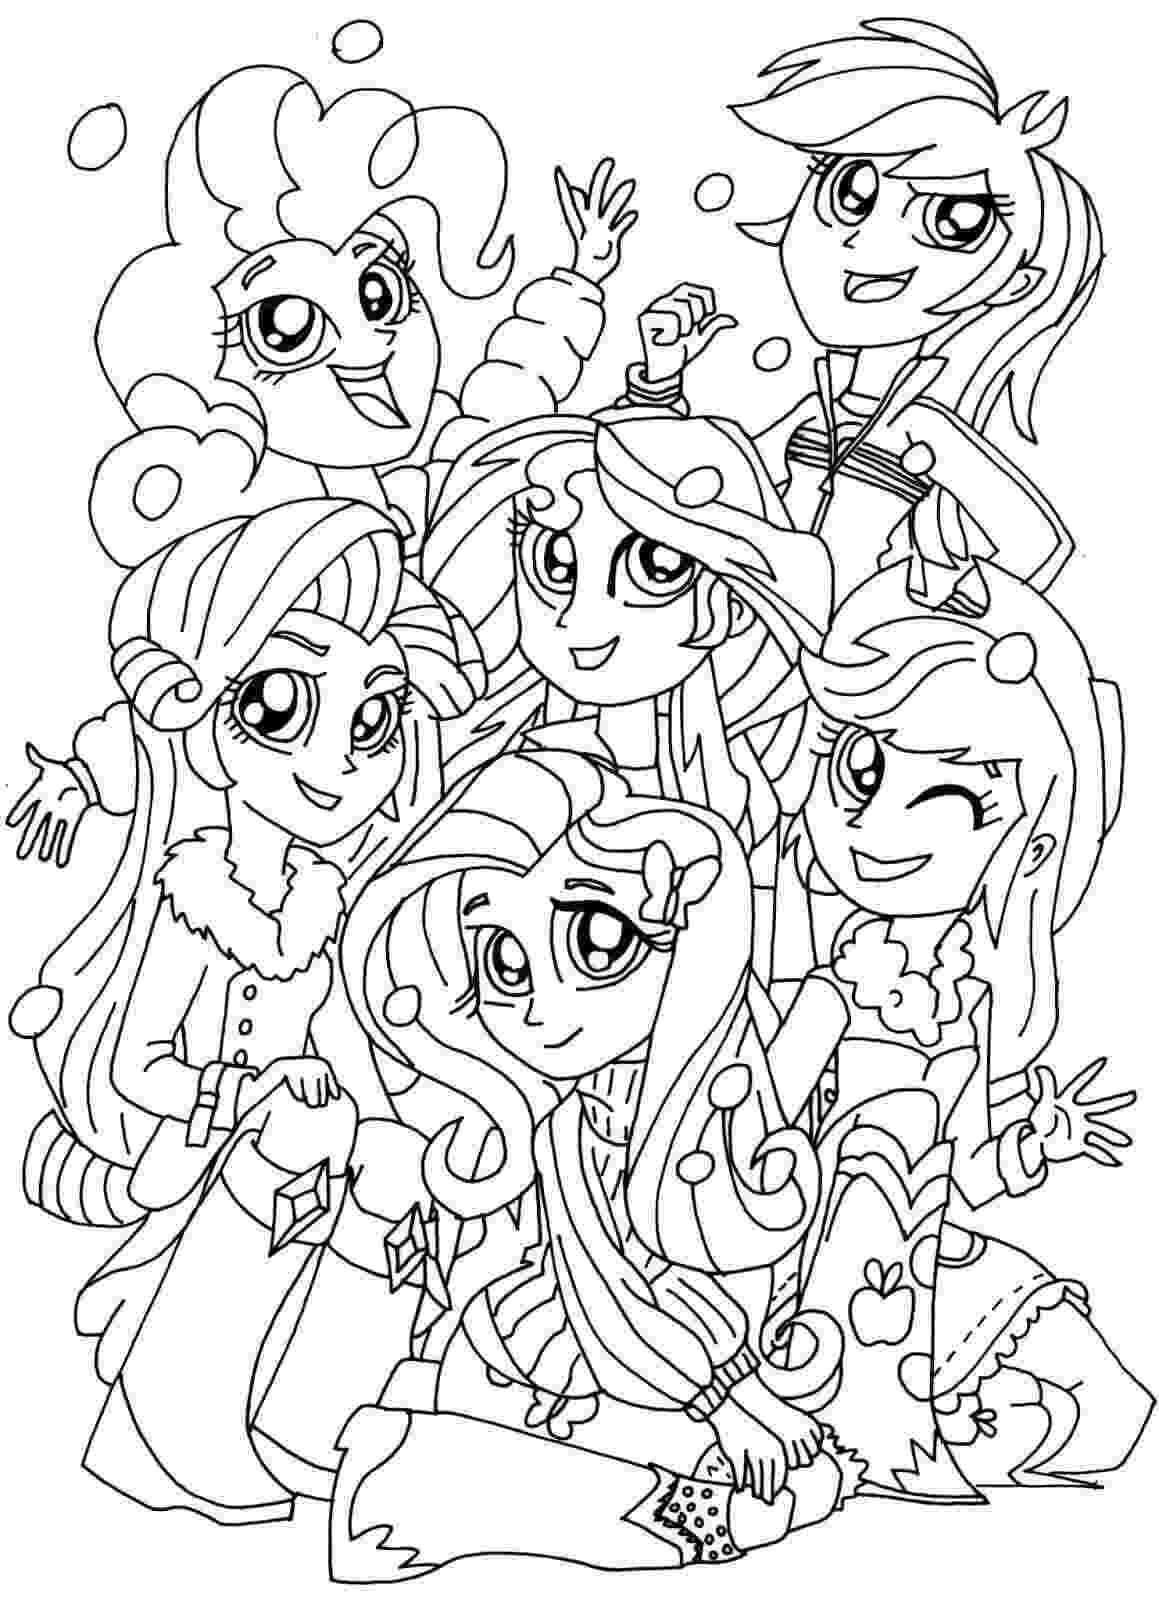 girls color pages american girl coloring pages best coloring pages for kids color pages girls